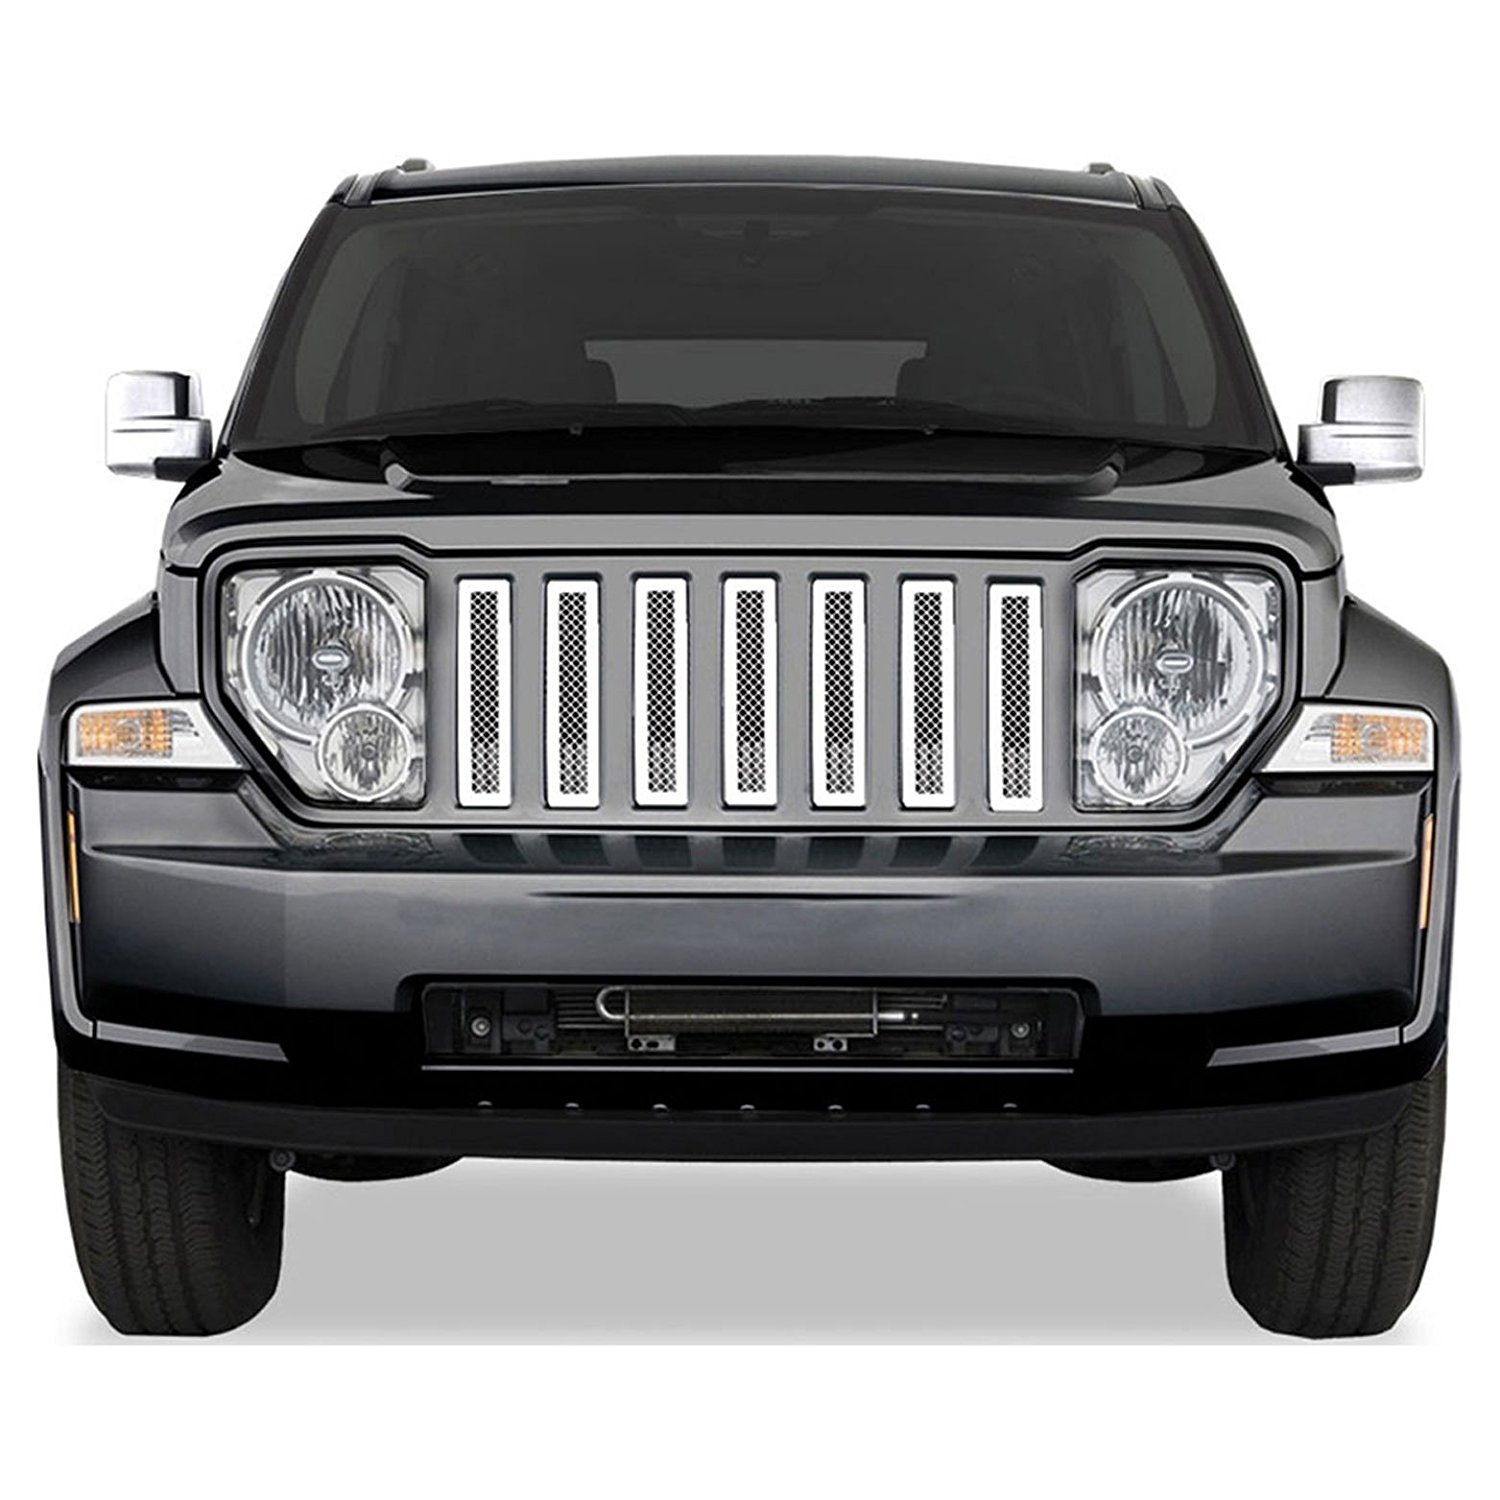 Tailgate Handle For 2008-2012 Jeep Liberty Chrome